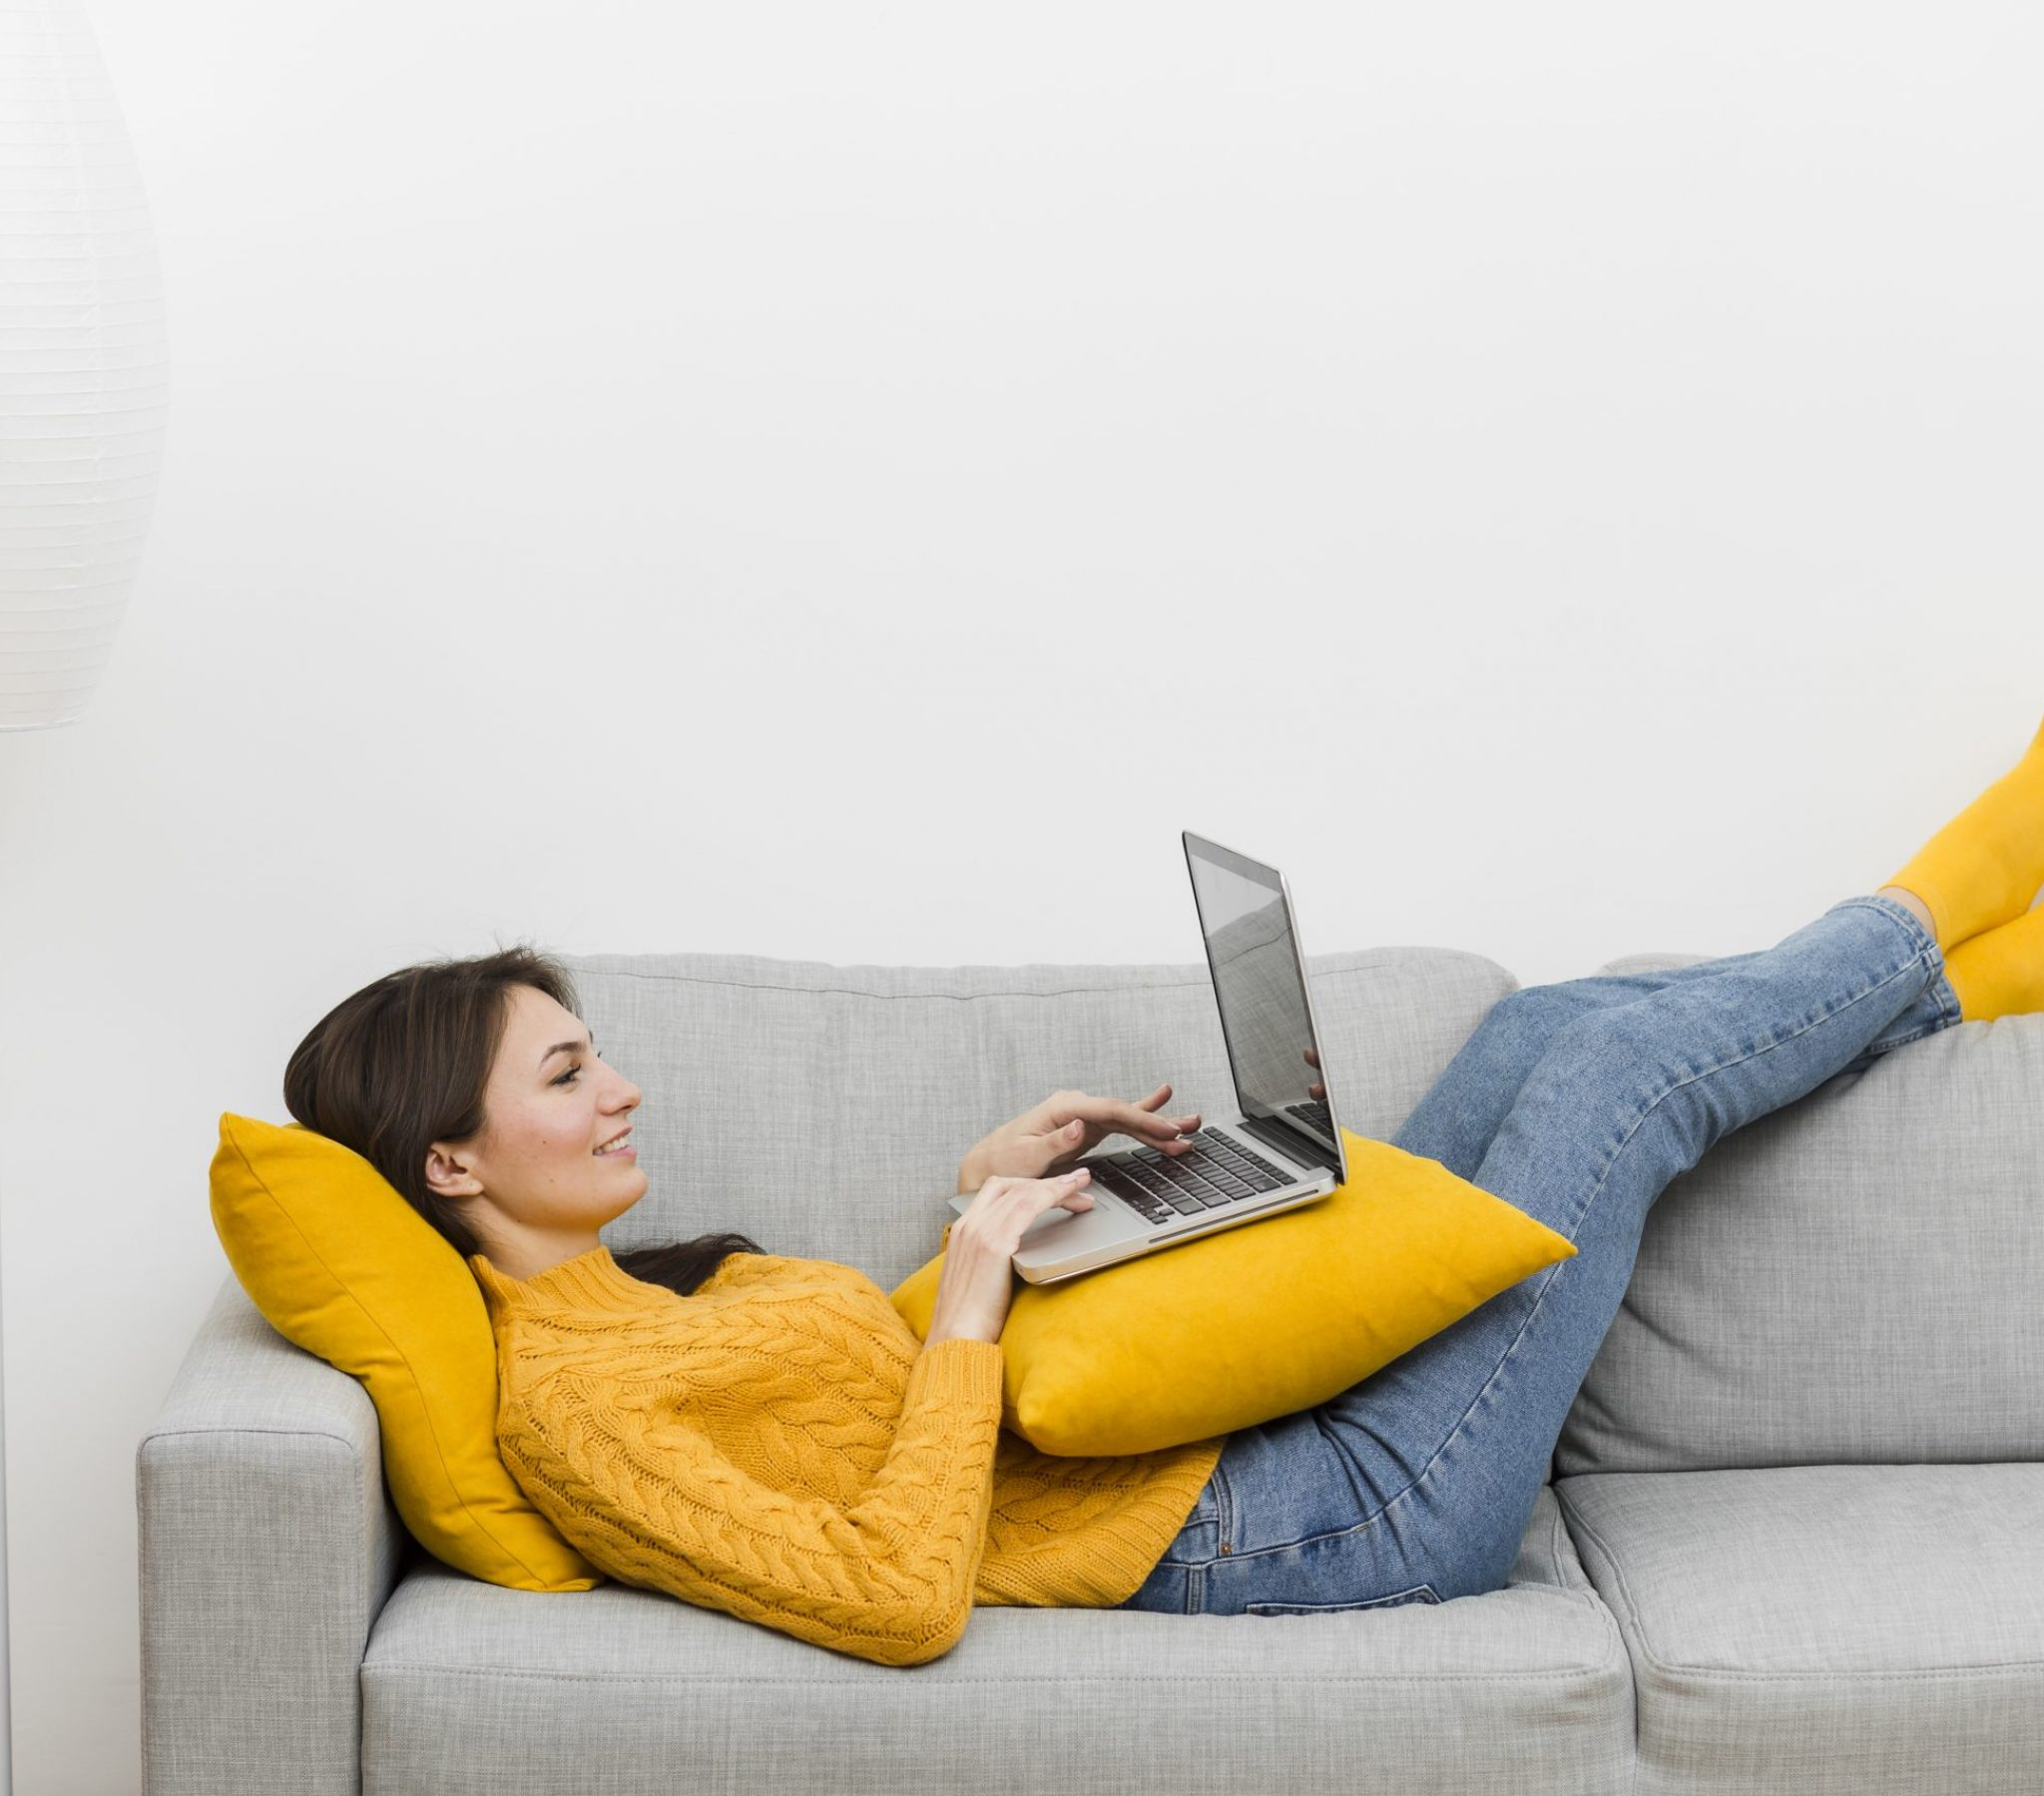 side-view-of-woman-relaxing-on-sofa-while-looking-at-laptop